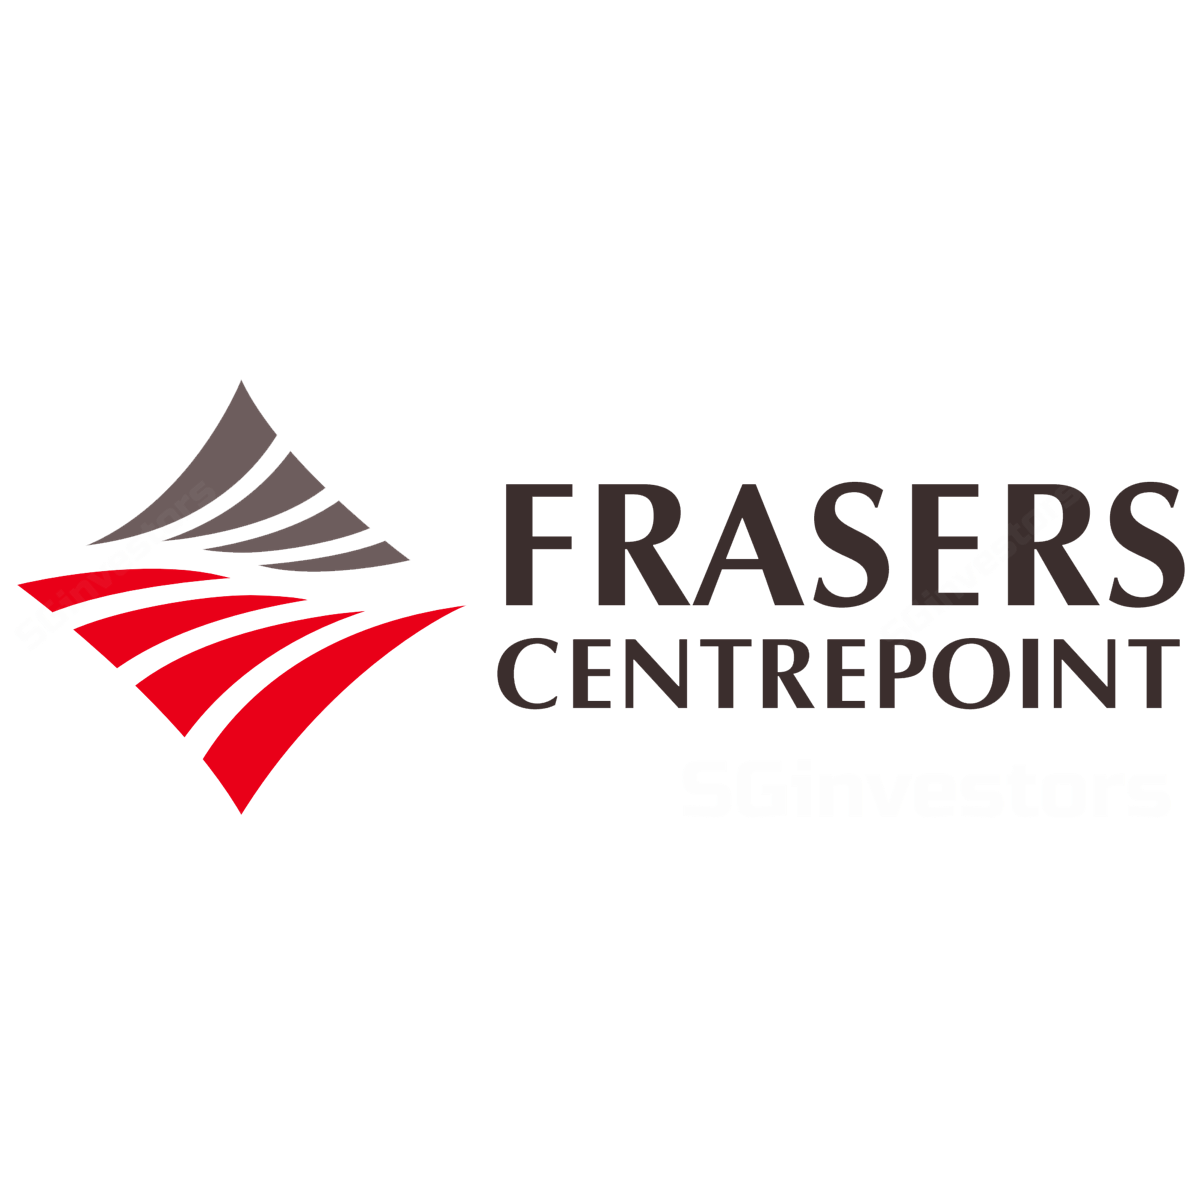 Frasers Centrepoint Ltd (FCL SP) - DBS Vickers 2017-09-12: Doubles Down In Europe